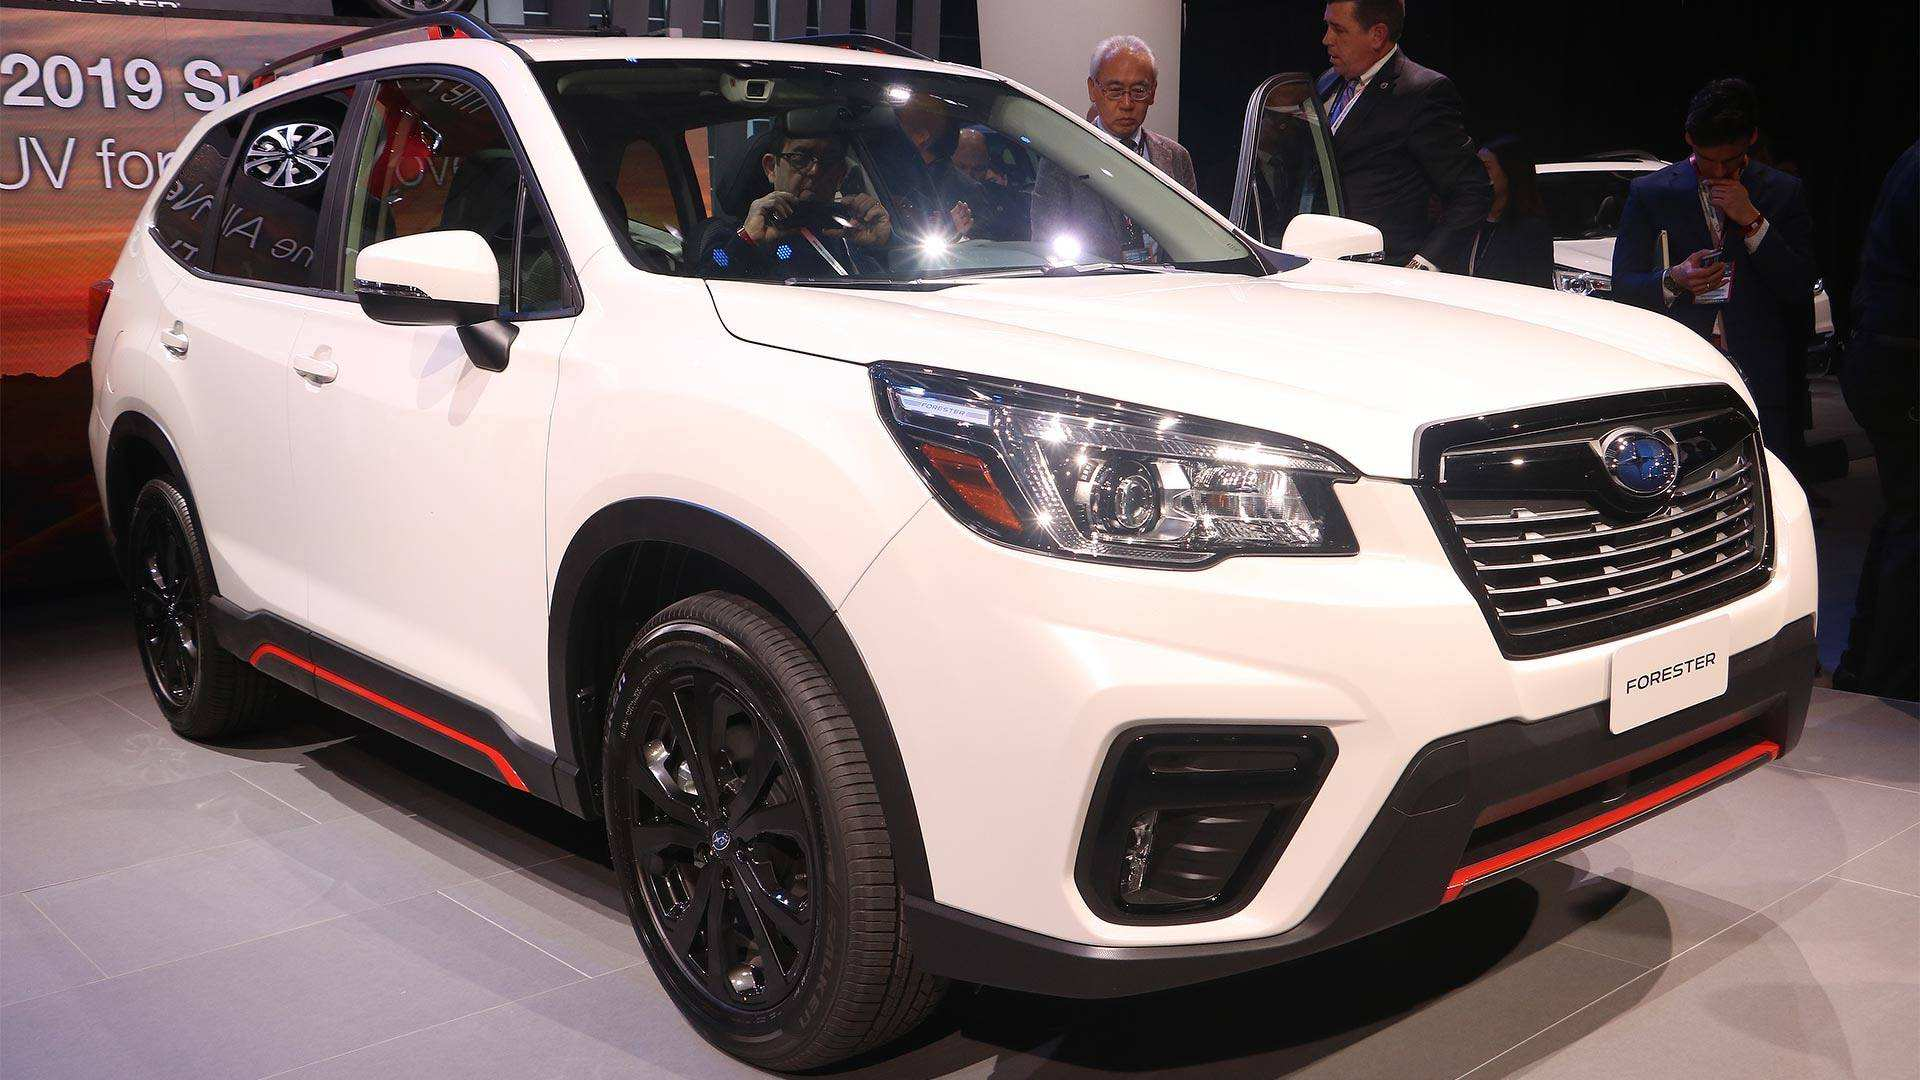 95 Gallery of 2019 Subaru New Model Exterior and Interior with 2019 Subaru New Model